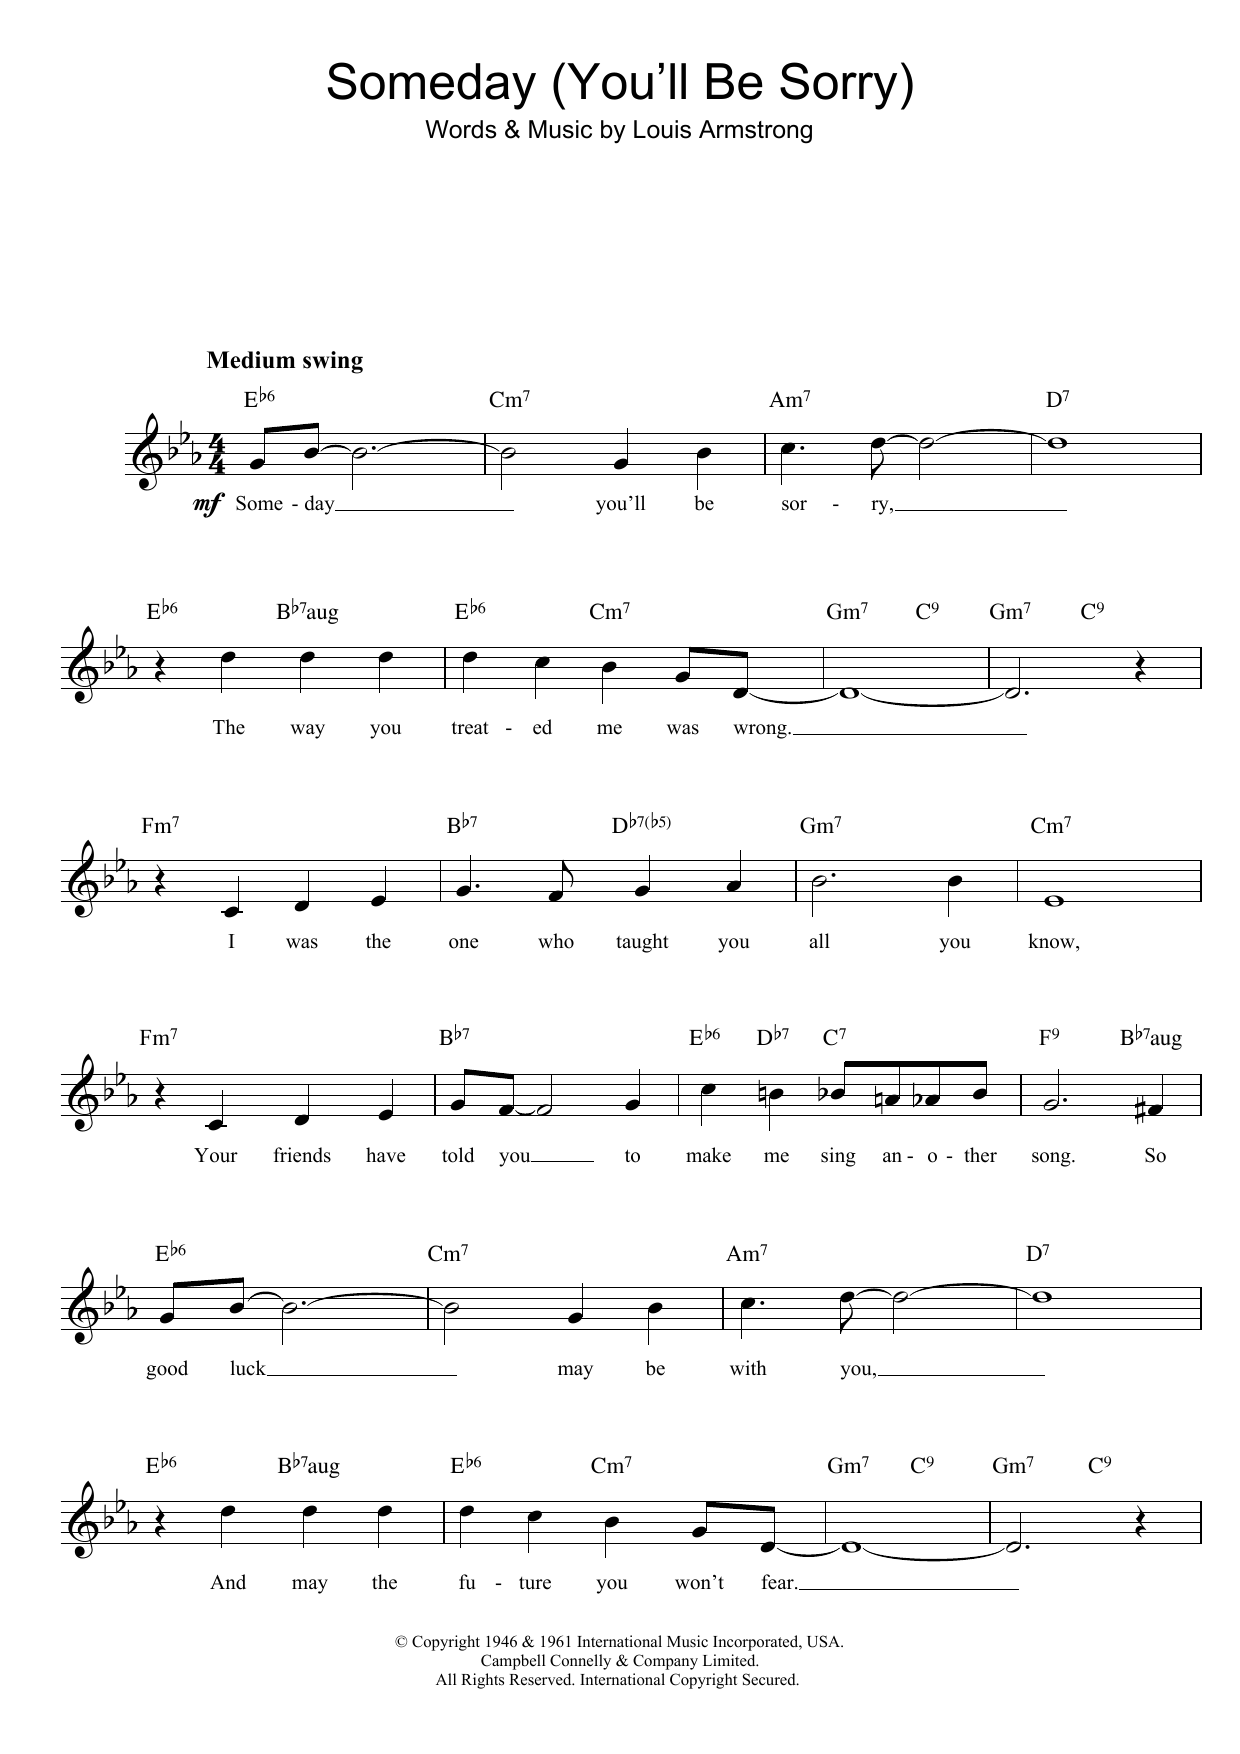 Someday (You'll Be Sorry) Sheet Music